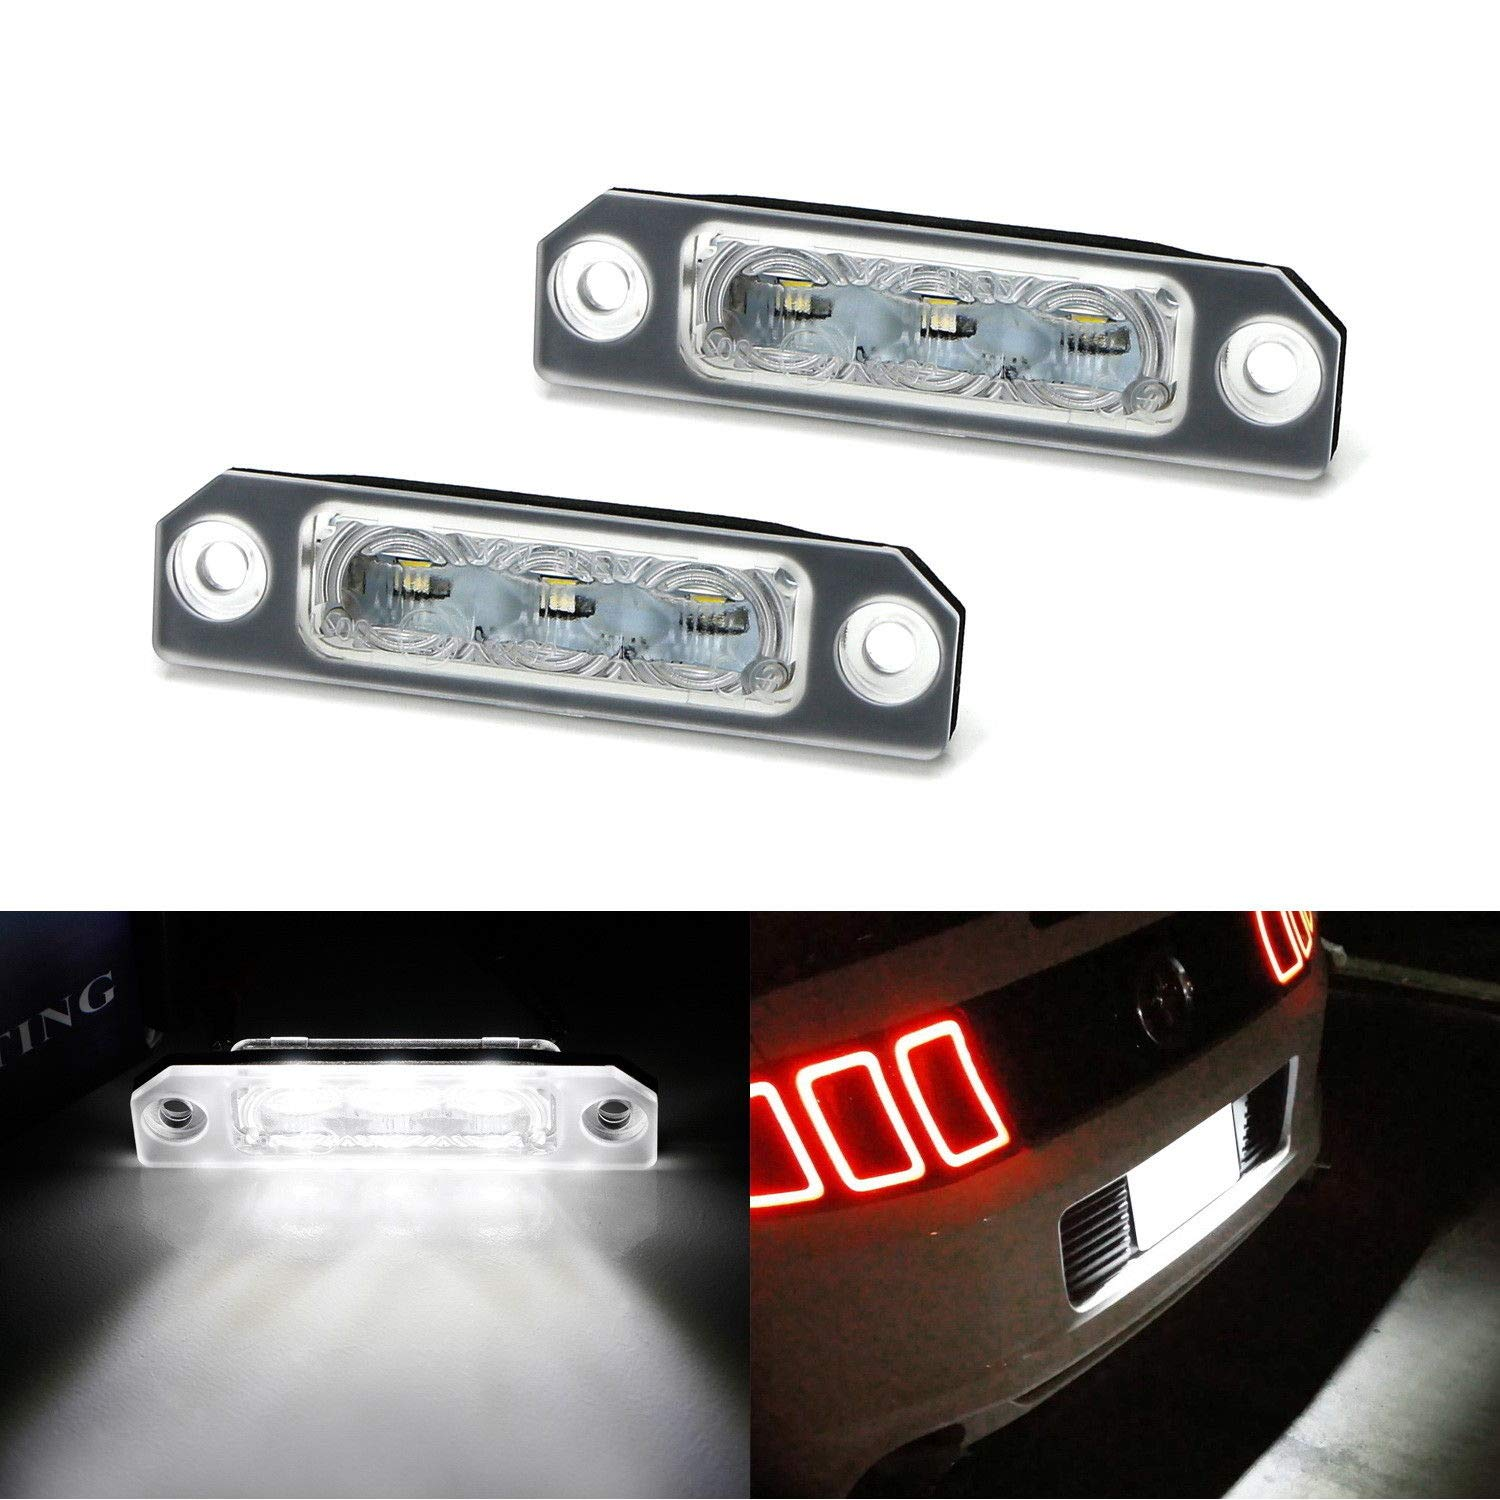 iJDMTOY OEM-Fit 3W Full LED License Plate Light Kit For 2011-14 Ford Mustang, 2009-18 Ford Flex, 2008-17 Ford Focus, Powered by 3-piece Osram Xenon White LED iJDMTOY Auto Accessories Replace Factory Number Plate Frame Light